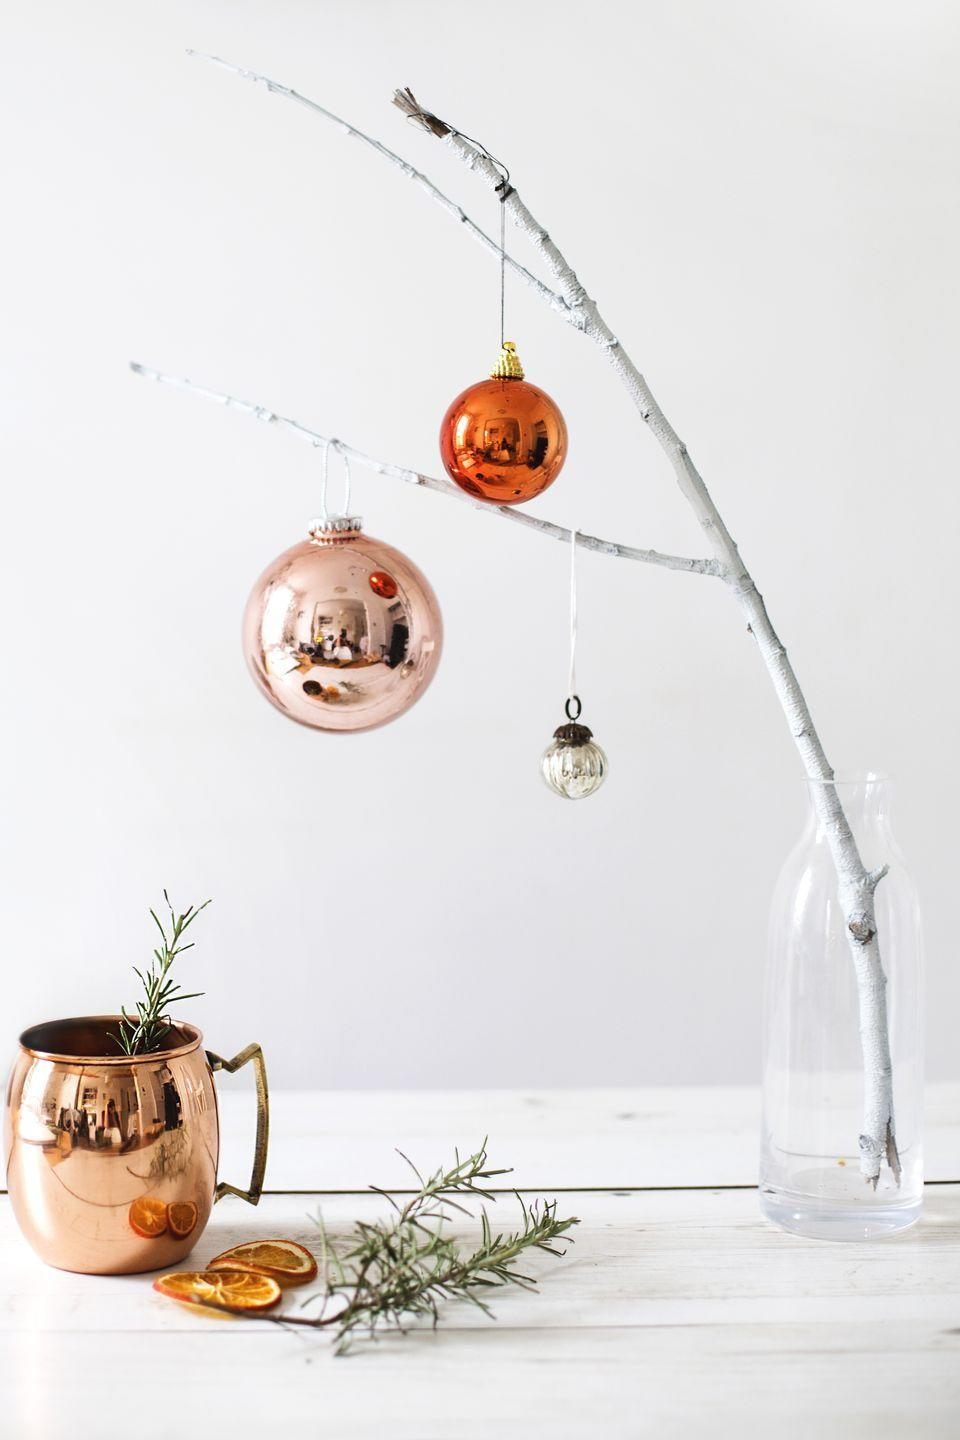 "<p>This adorable ""tree"" will look chic on any surface around your home, and it's stupid easy to make. Just find a sturdy tree branch, apply spray paint, set it in a small glass bottle or vase, and decorate!</p><p>Get the tutorial at <a href=""https://thelovelydrawer.com/styling-the-seasons-december-2/"" rel=""nofollow noopener"" target=""_blank"" data-ylk=""slk:The Lovely Drawer"" class=""link rapid-noclick-resp"">The Lovely Drawer</a>.</p>"